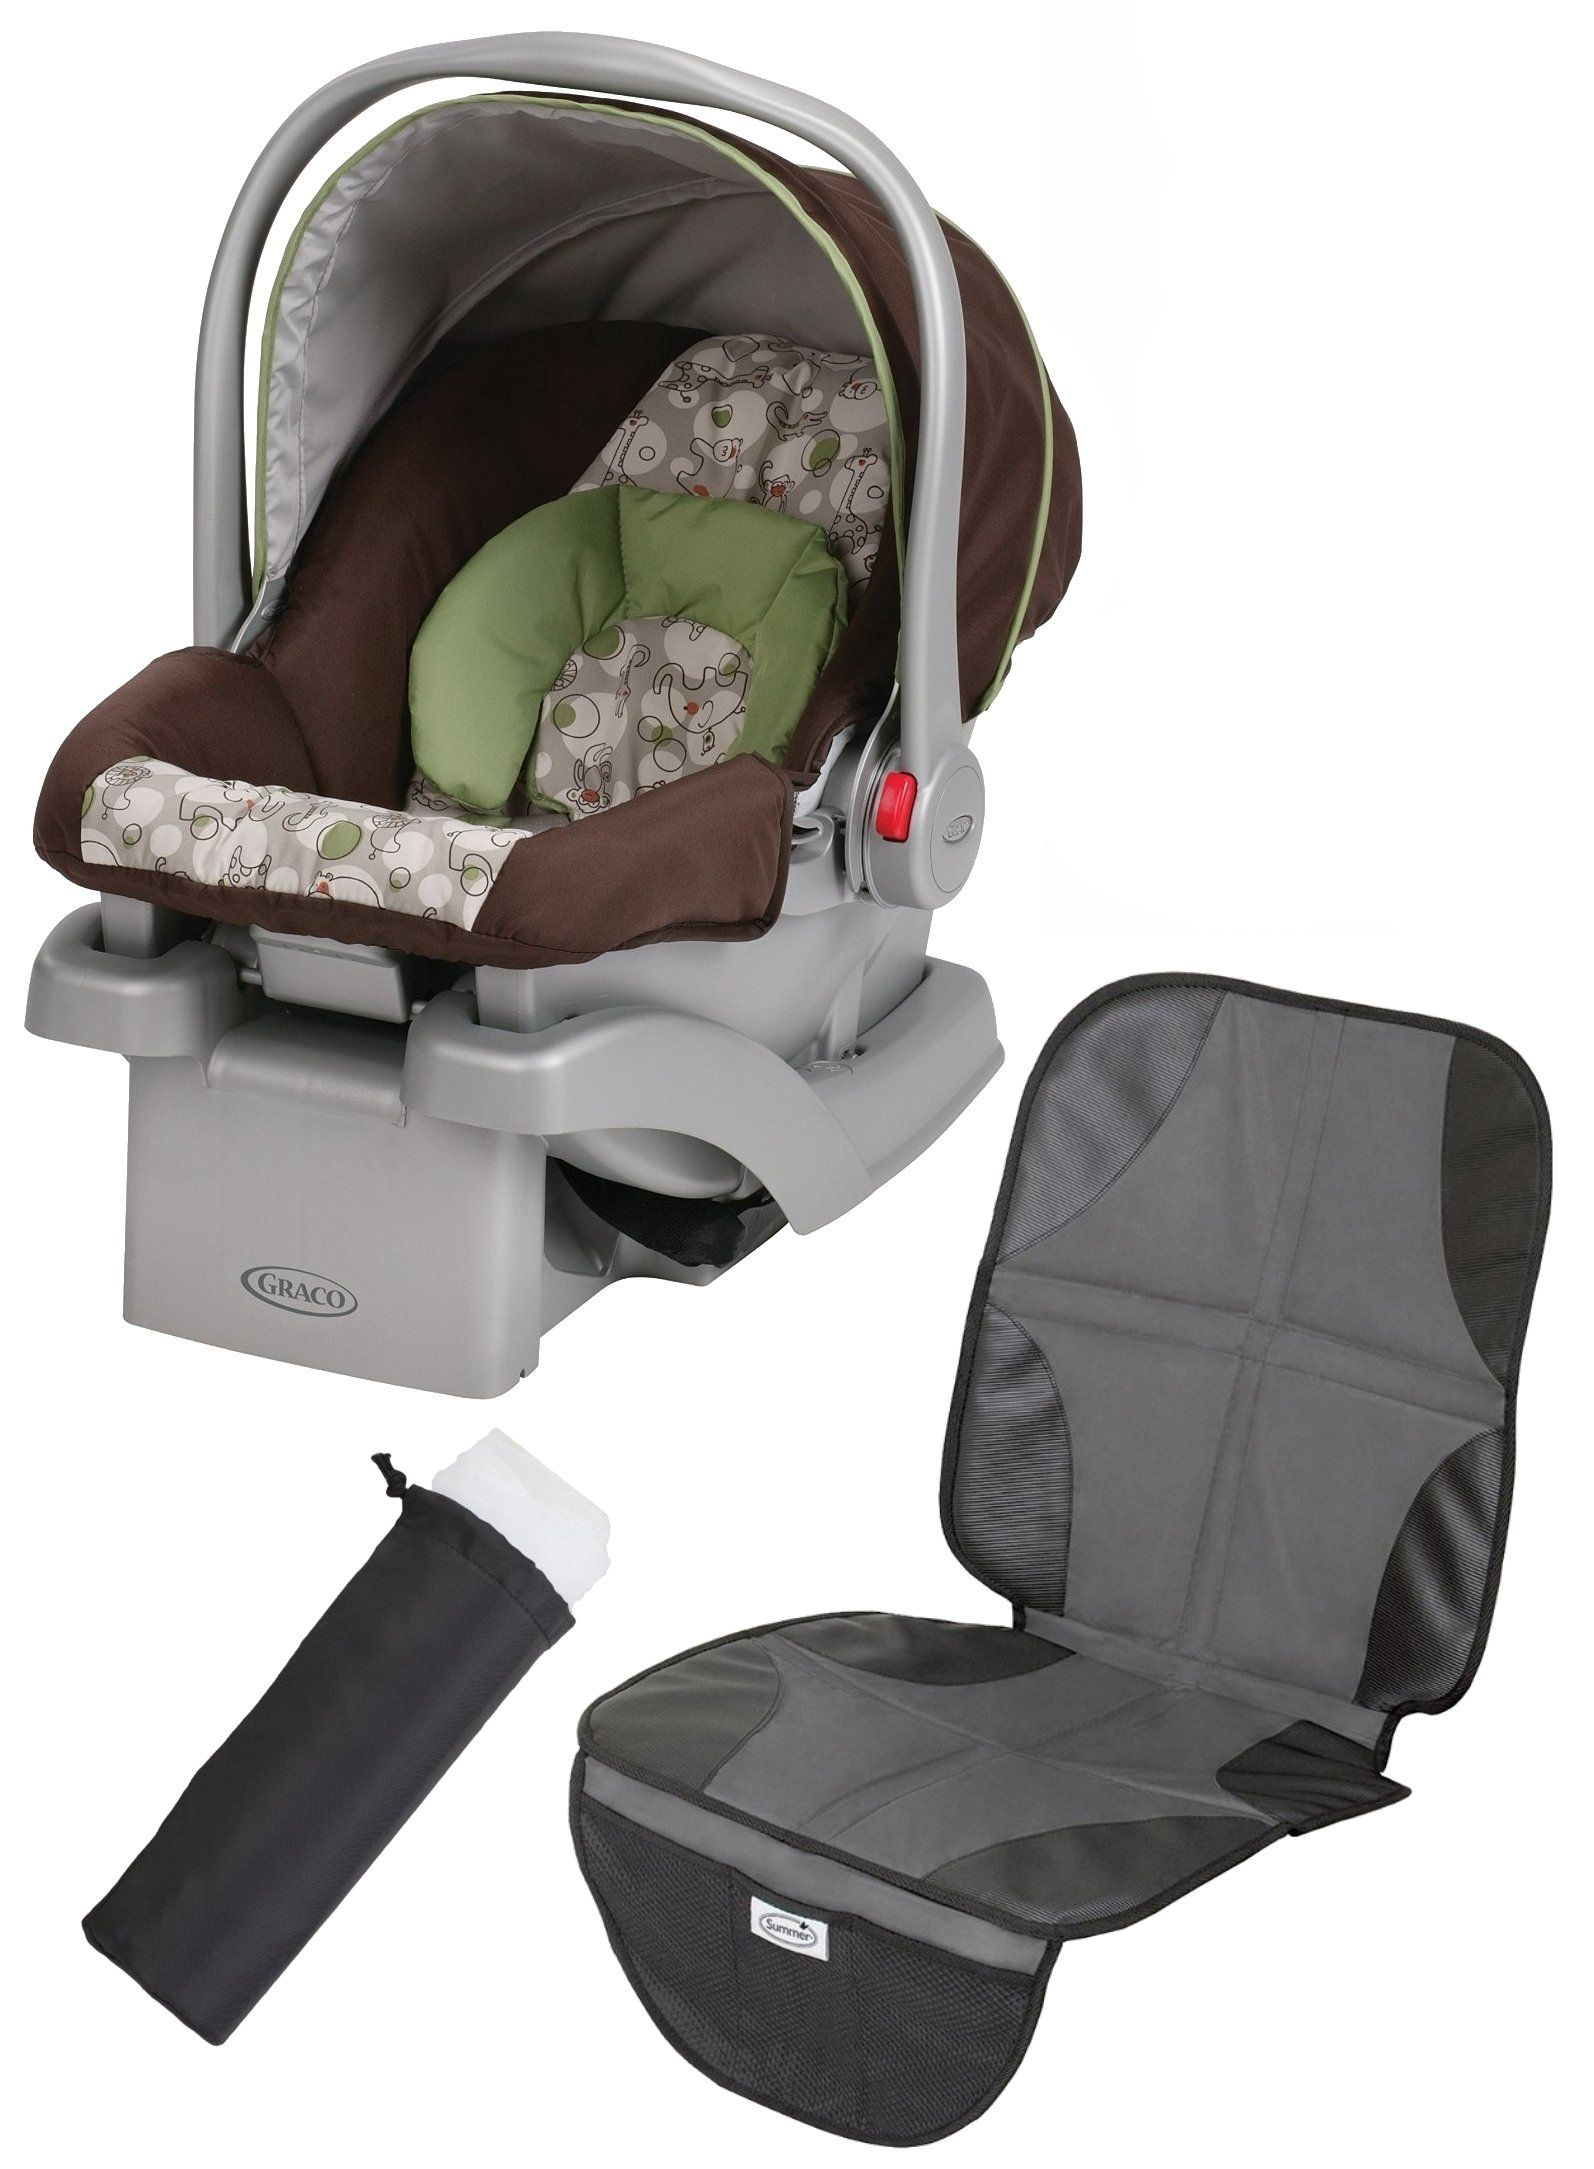 Graco SnugRide Click Connect 30 Infant Car Seat With Mat Carrier Netting Zuba